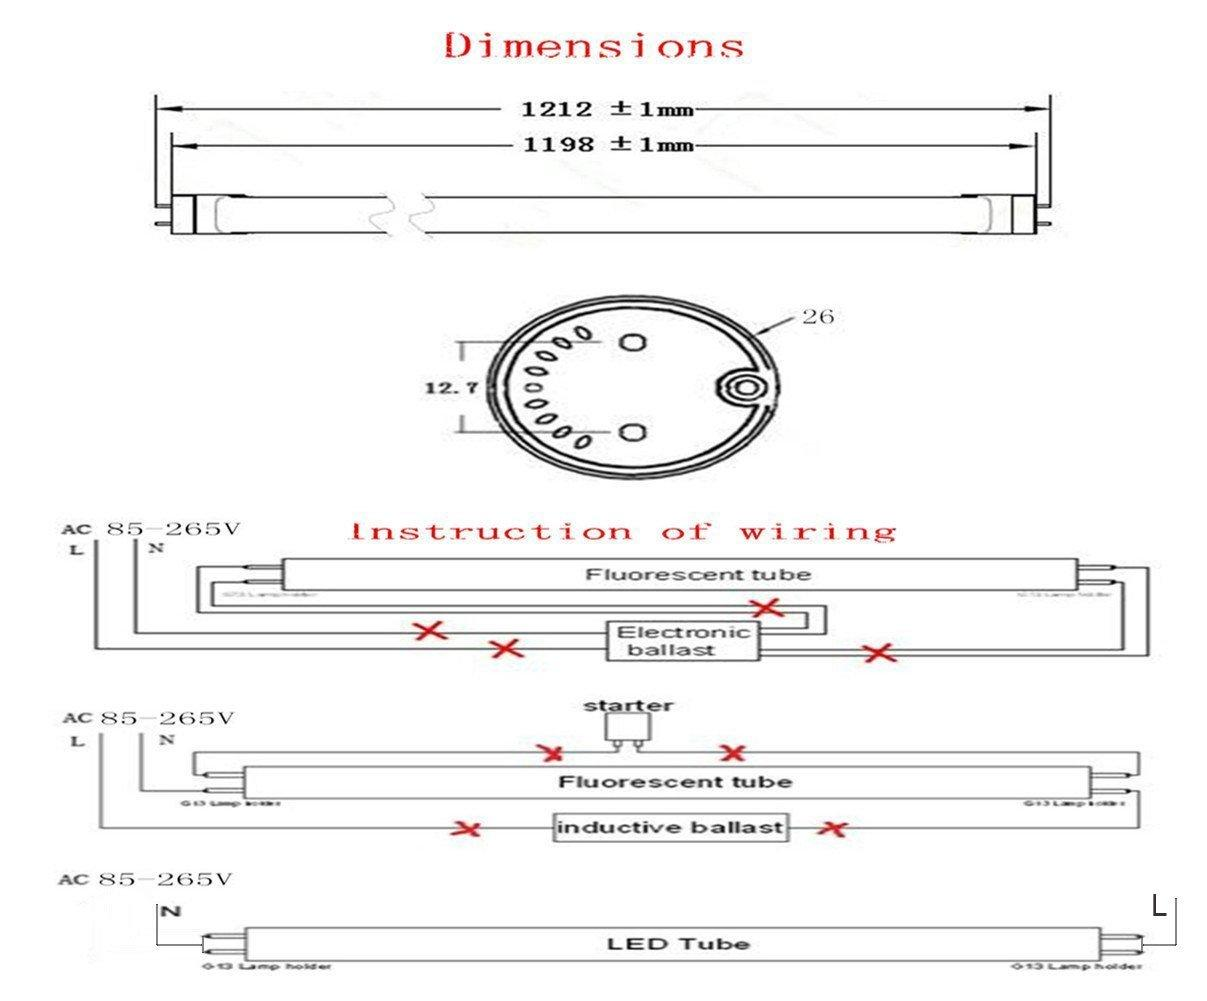 lamp wiring diagram single light switch australia 2 led tube free diagrams